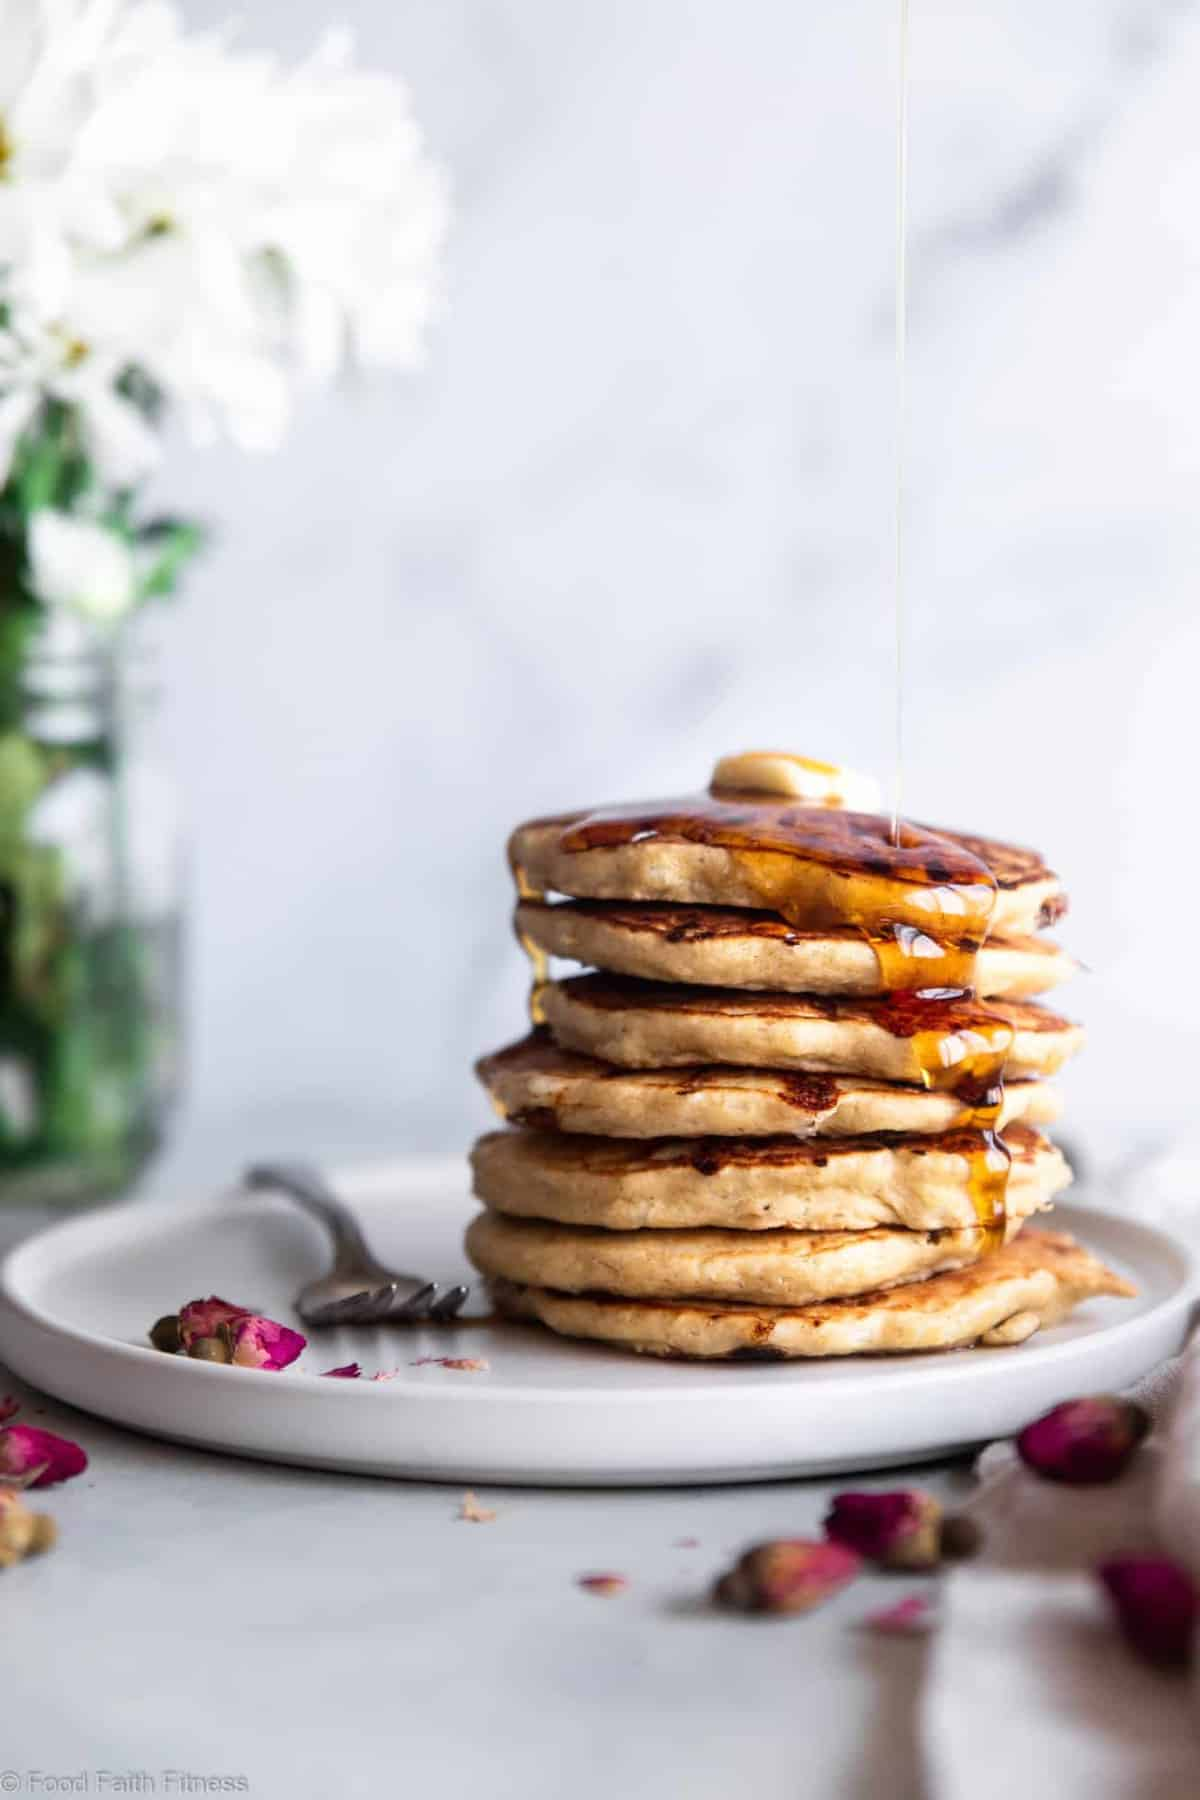 Fluffy Cottage Cheese Pancakes - These easy pancakes naturally gluten free and protein packed! Make them ahead for healthy breakfasts or make them on weekends! Great for kids and adults. | #Foodfaithfitness | #Glutenfree #healthy #breakfast #pancakes